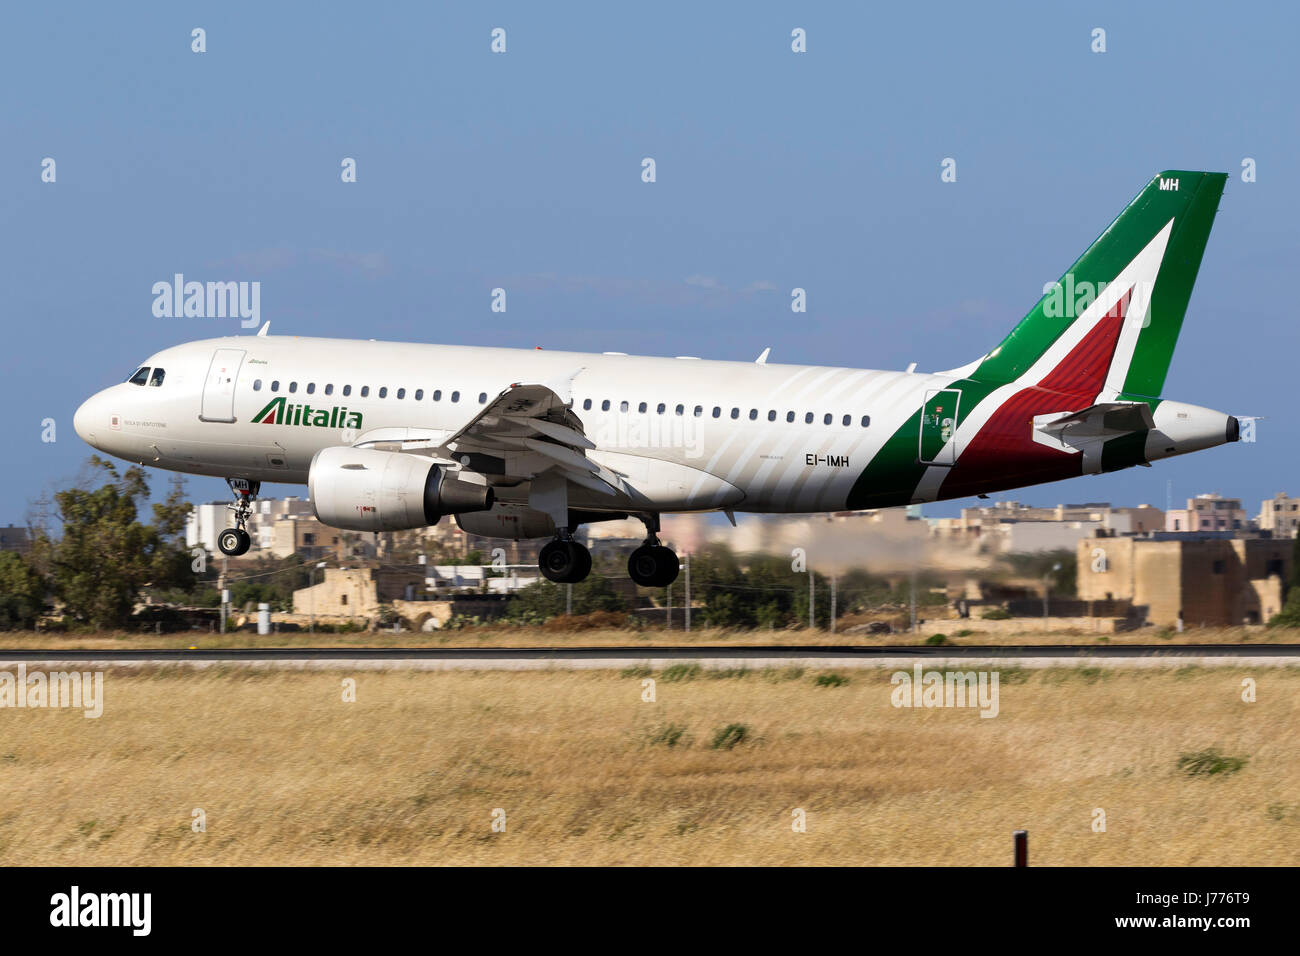 Alitalia Airbus A319-112 [EI-IMH] in the latest livery for Alitalia landing runway 31. - Stock Image